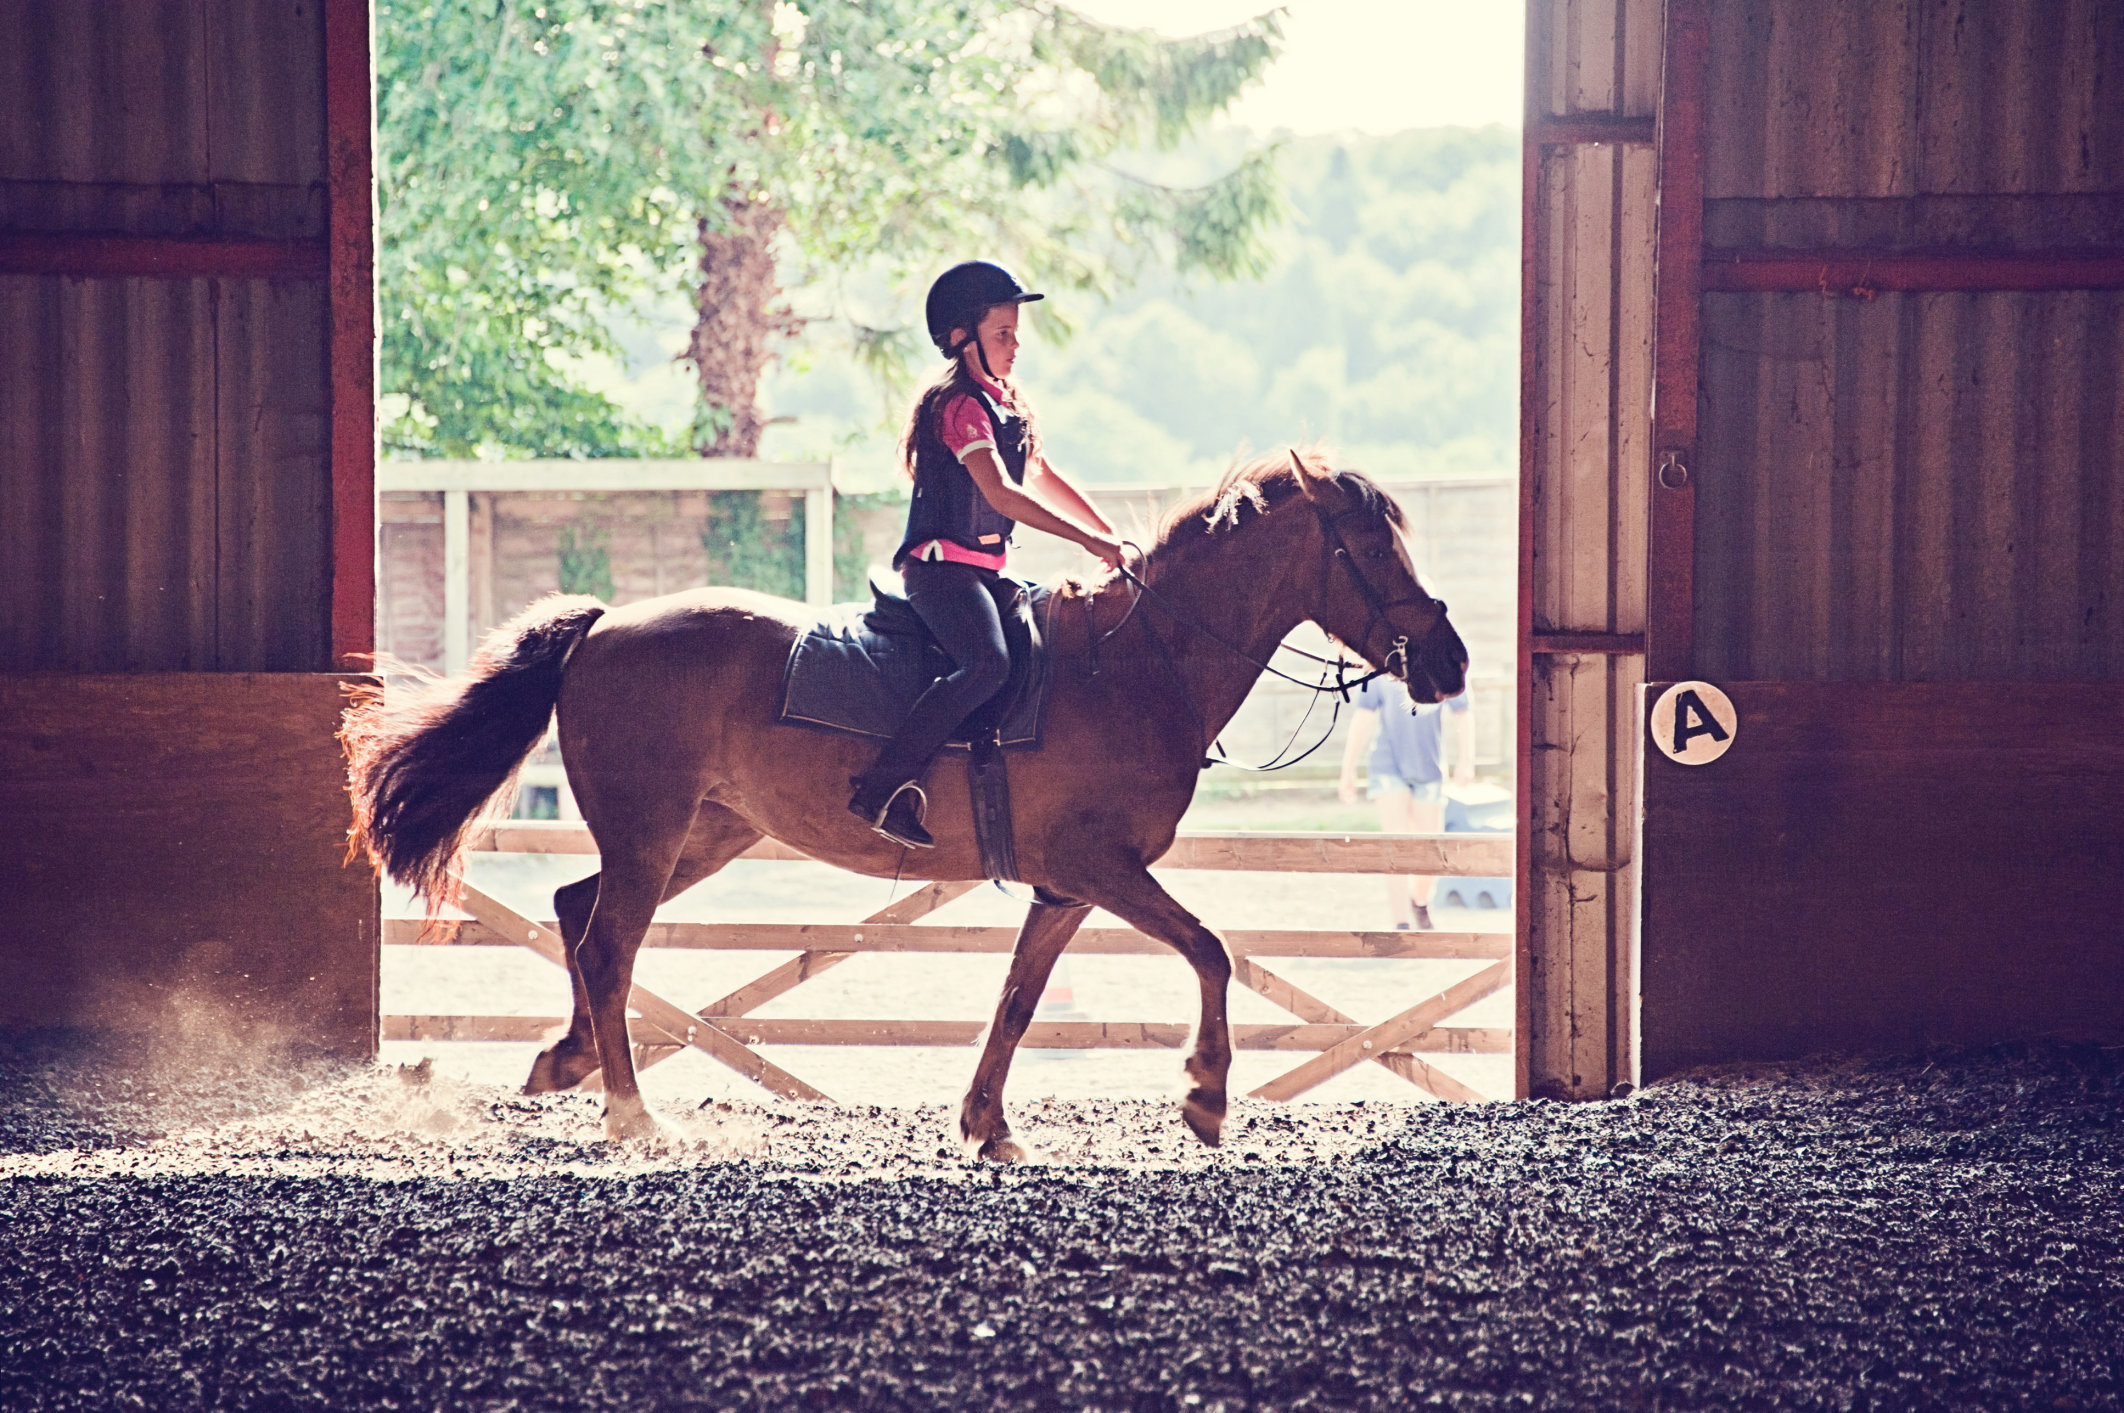 Foster Care, A Young Girl's Dreams And A Horse Called T-Bone